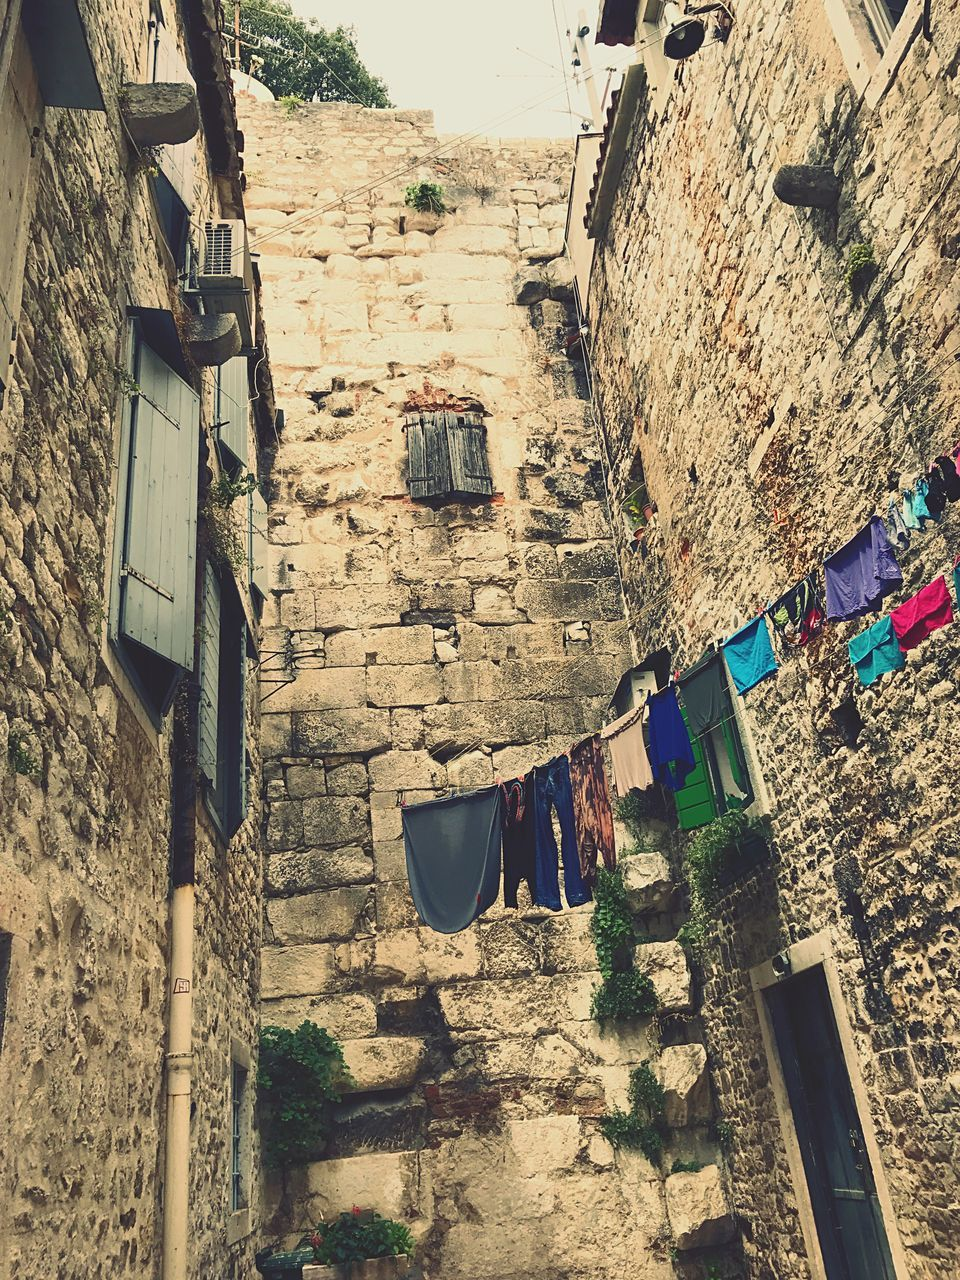 architecture, built structure, hanging, building exterior, day, clothesline, outdoors, no people, drying